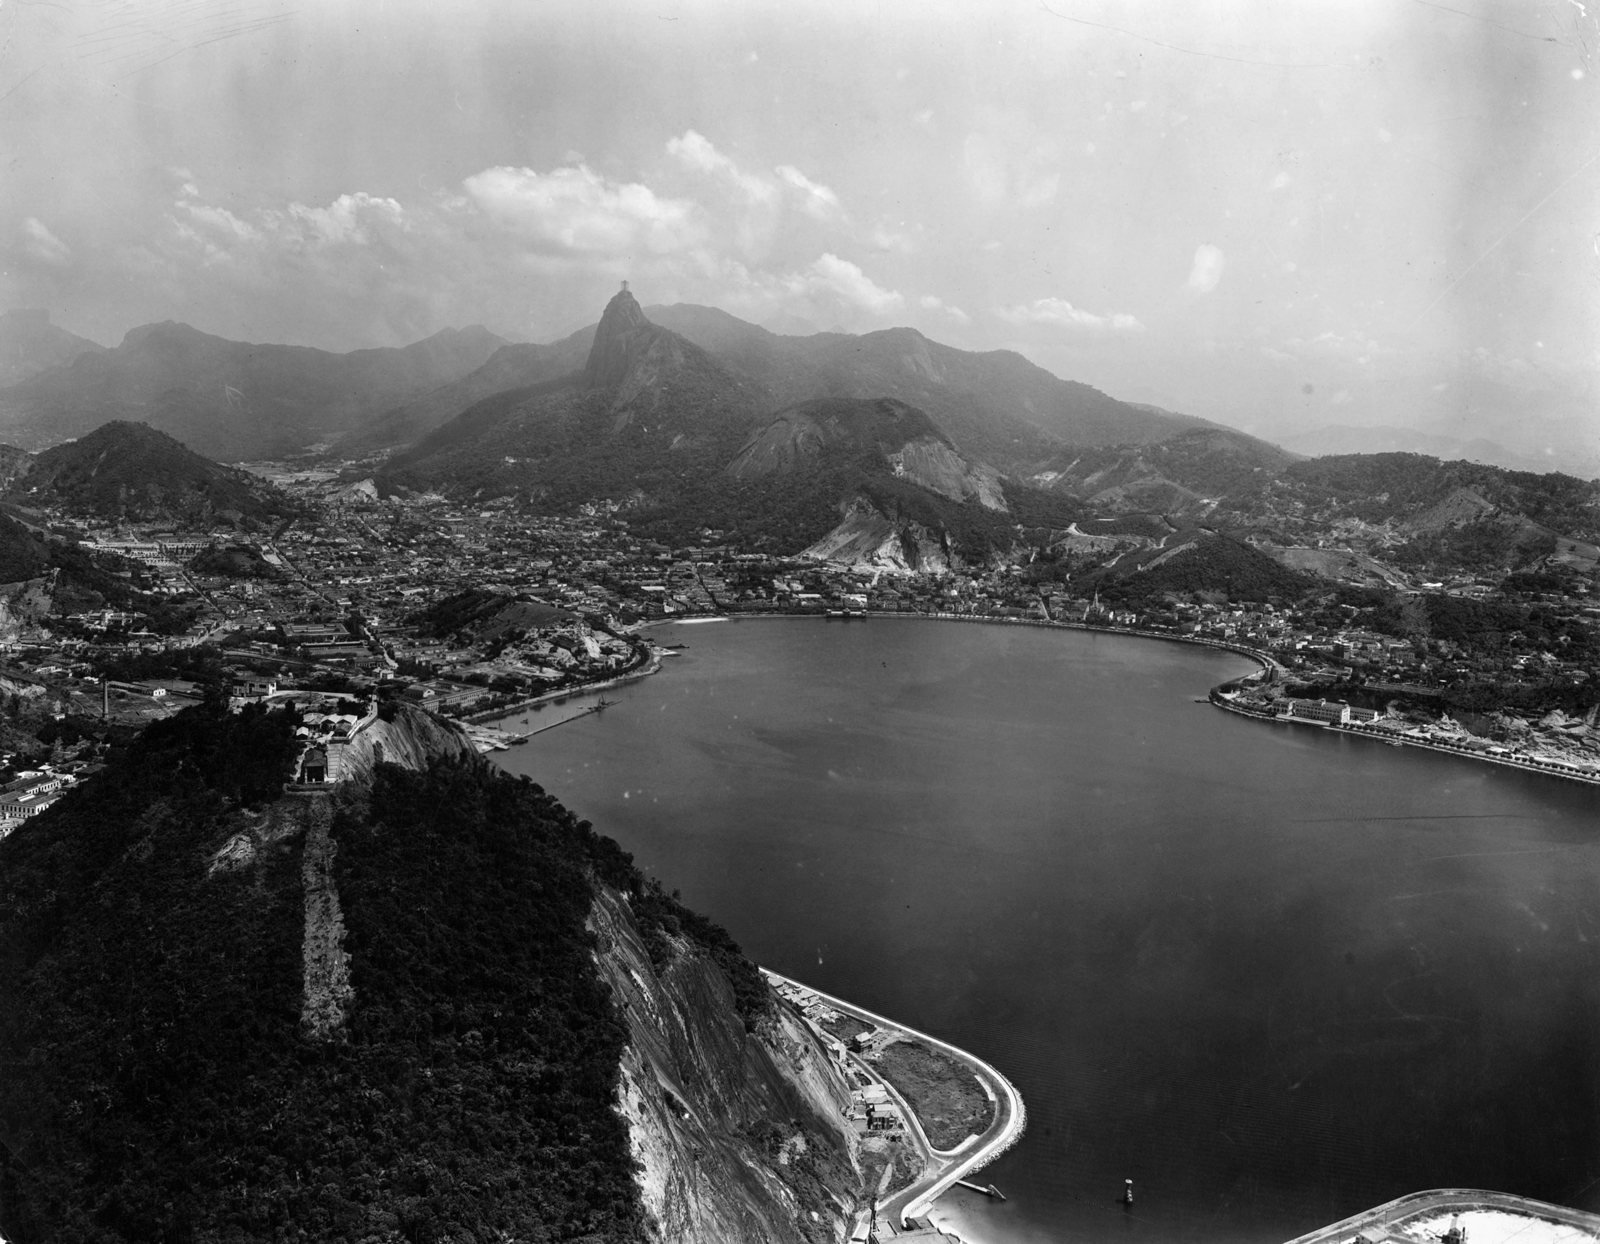 Rio de Janeiro, 1955; where the poet Elizabeth Bishop moved in 1951, and would live for nearly two decades